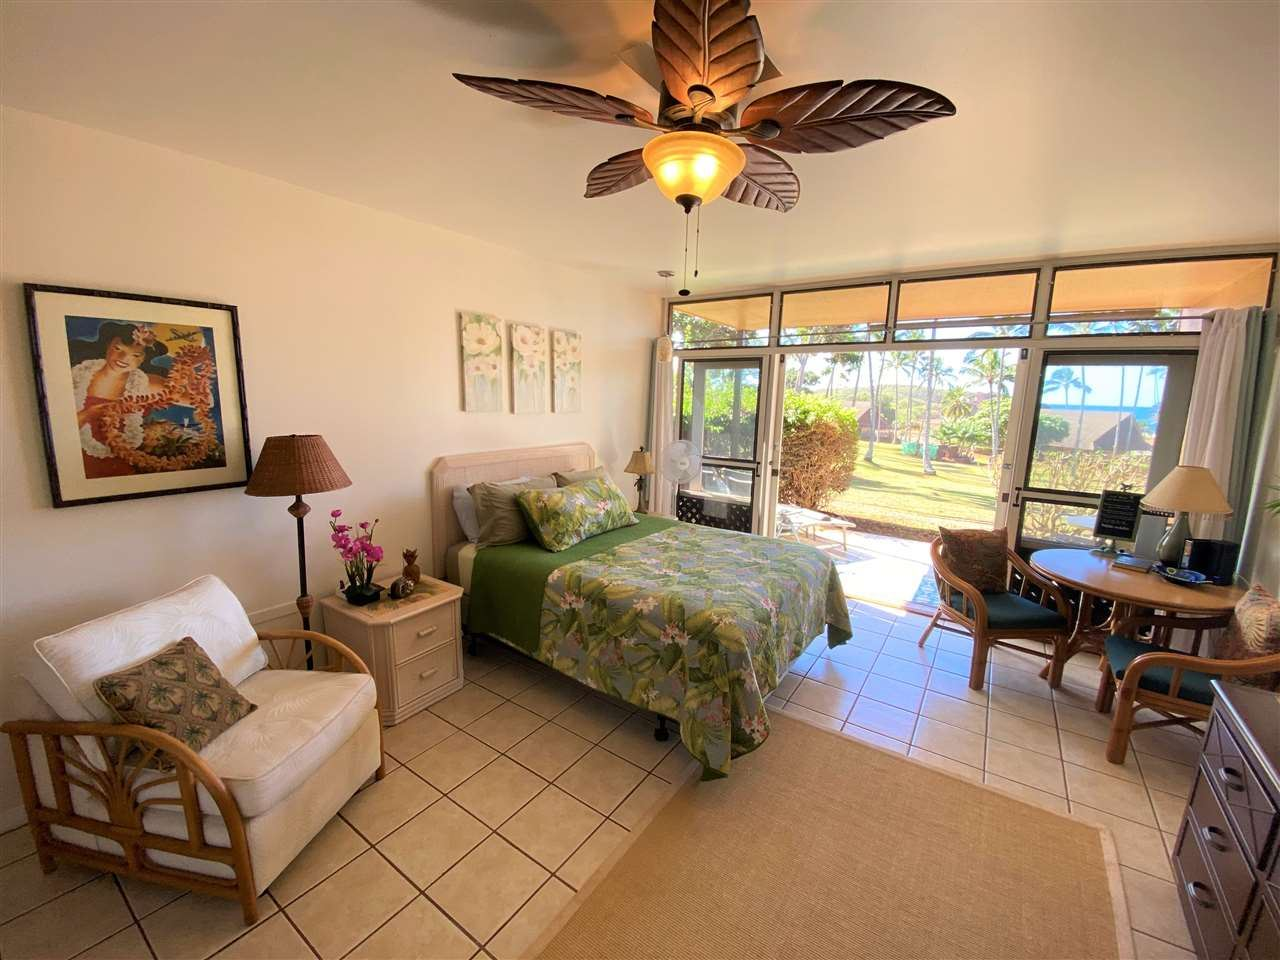 Photo of 0 KEPUHI Pl #17B06, Maunaloa, HI 96770 (MLS # 389767)